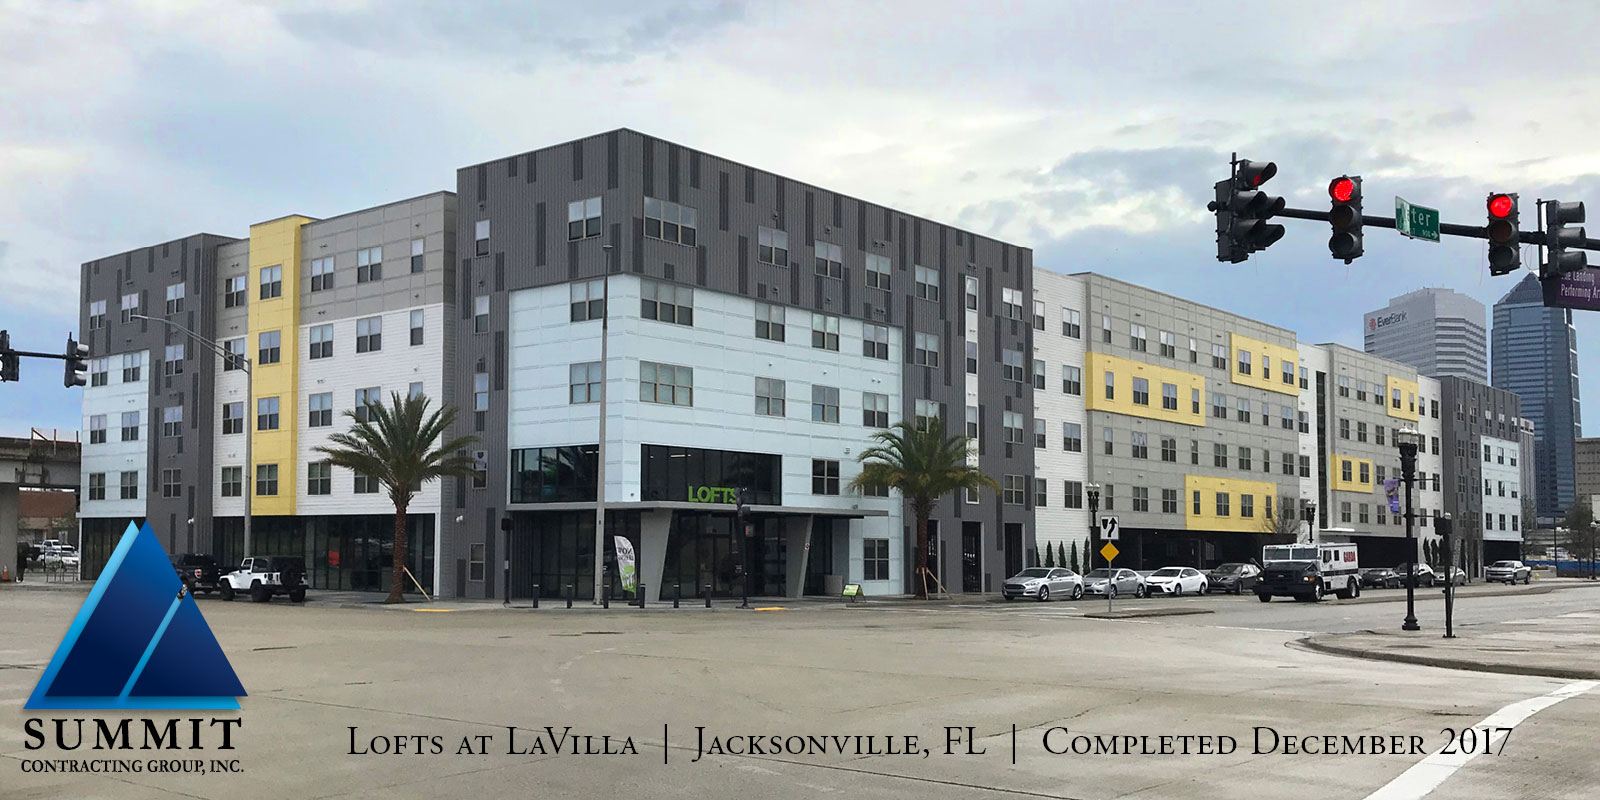 Exterior of building for The Lofts at LaVilla Tax Credit Apartments completed in December 2017